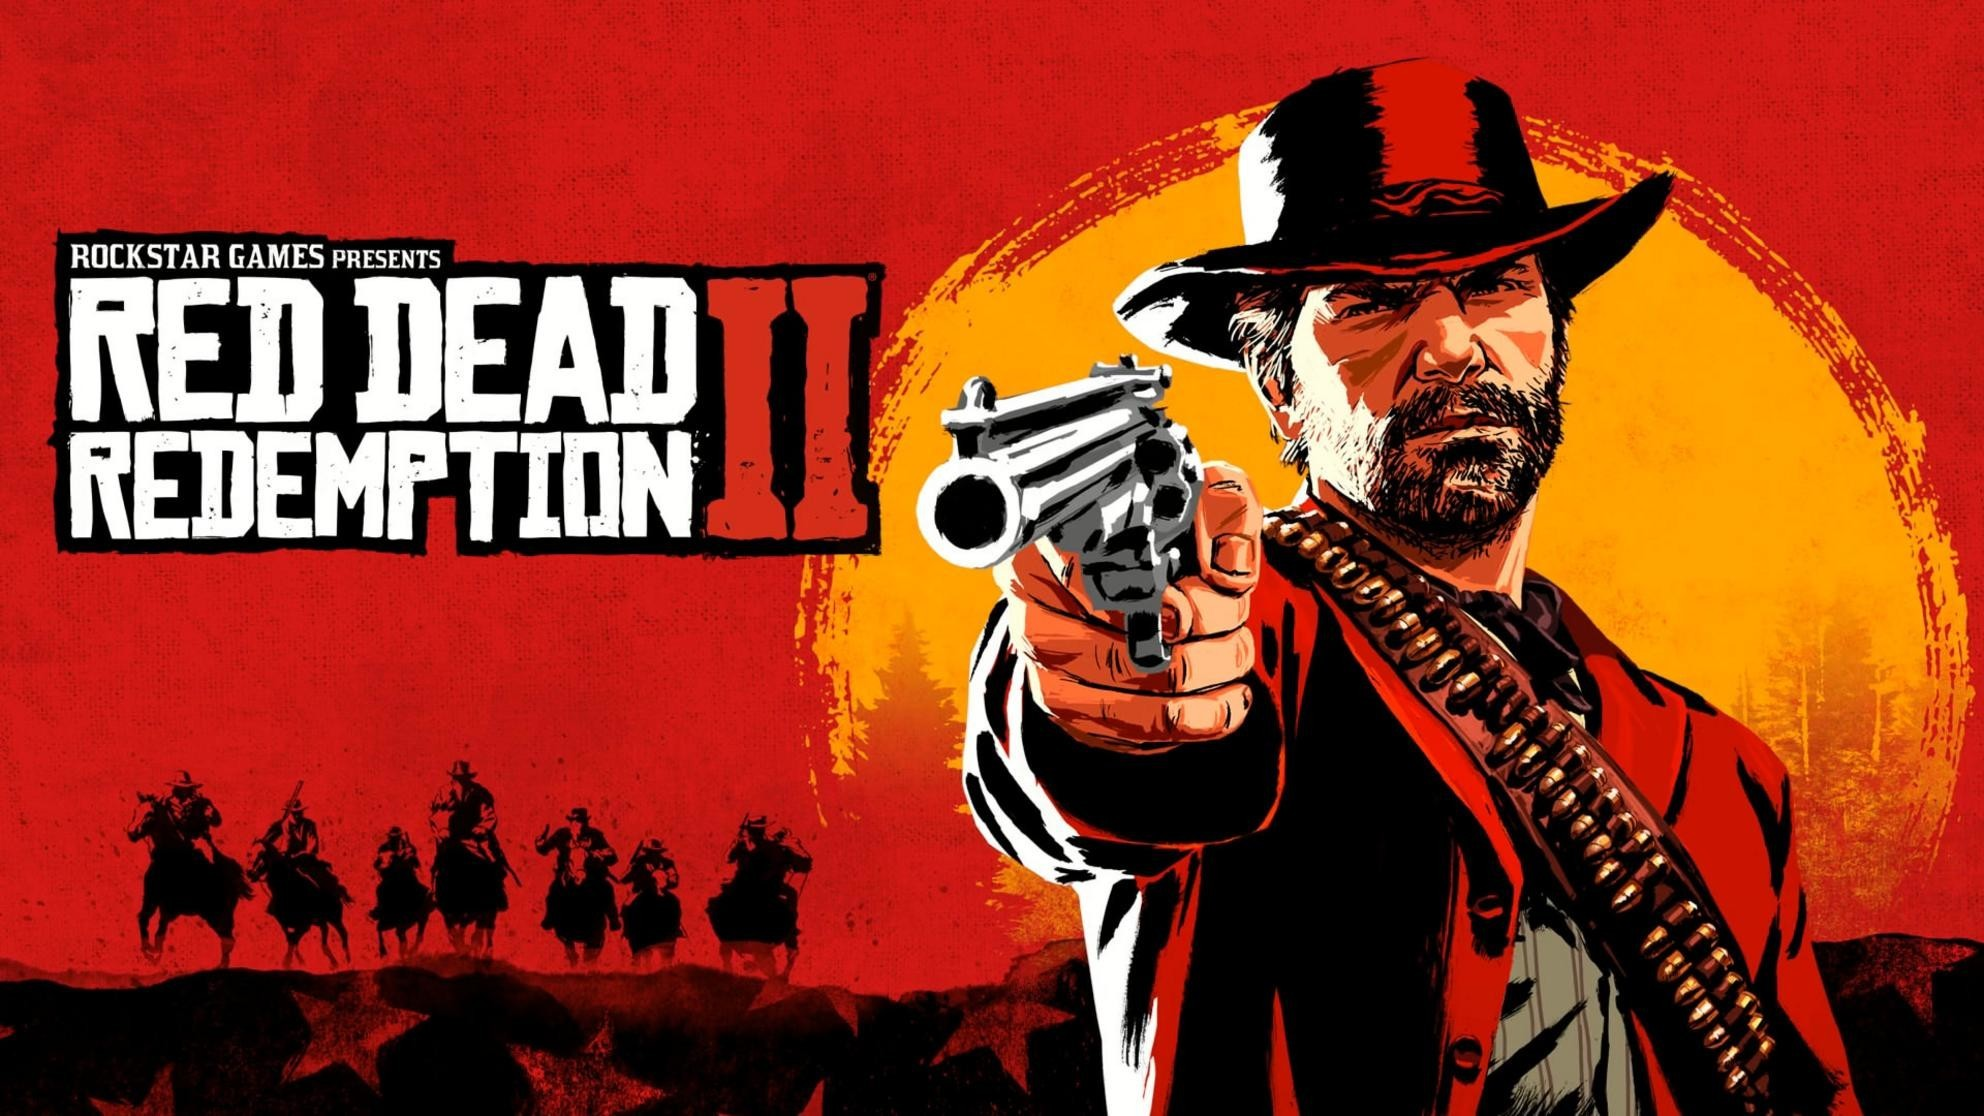 Red Dead Redemption 2's Launch Trailer is out.